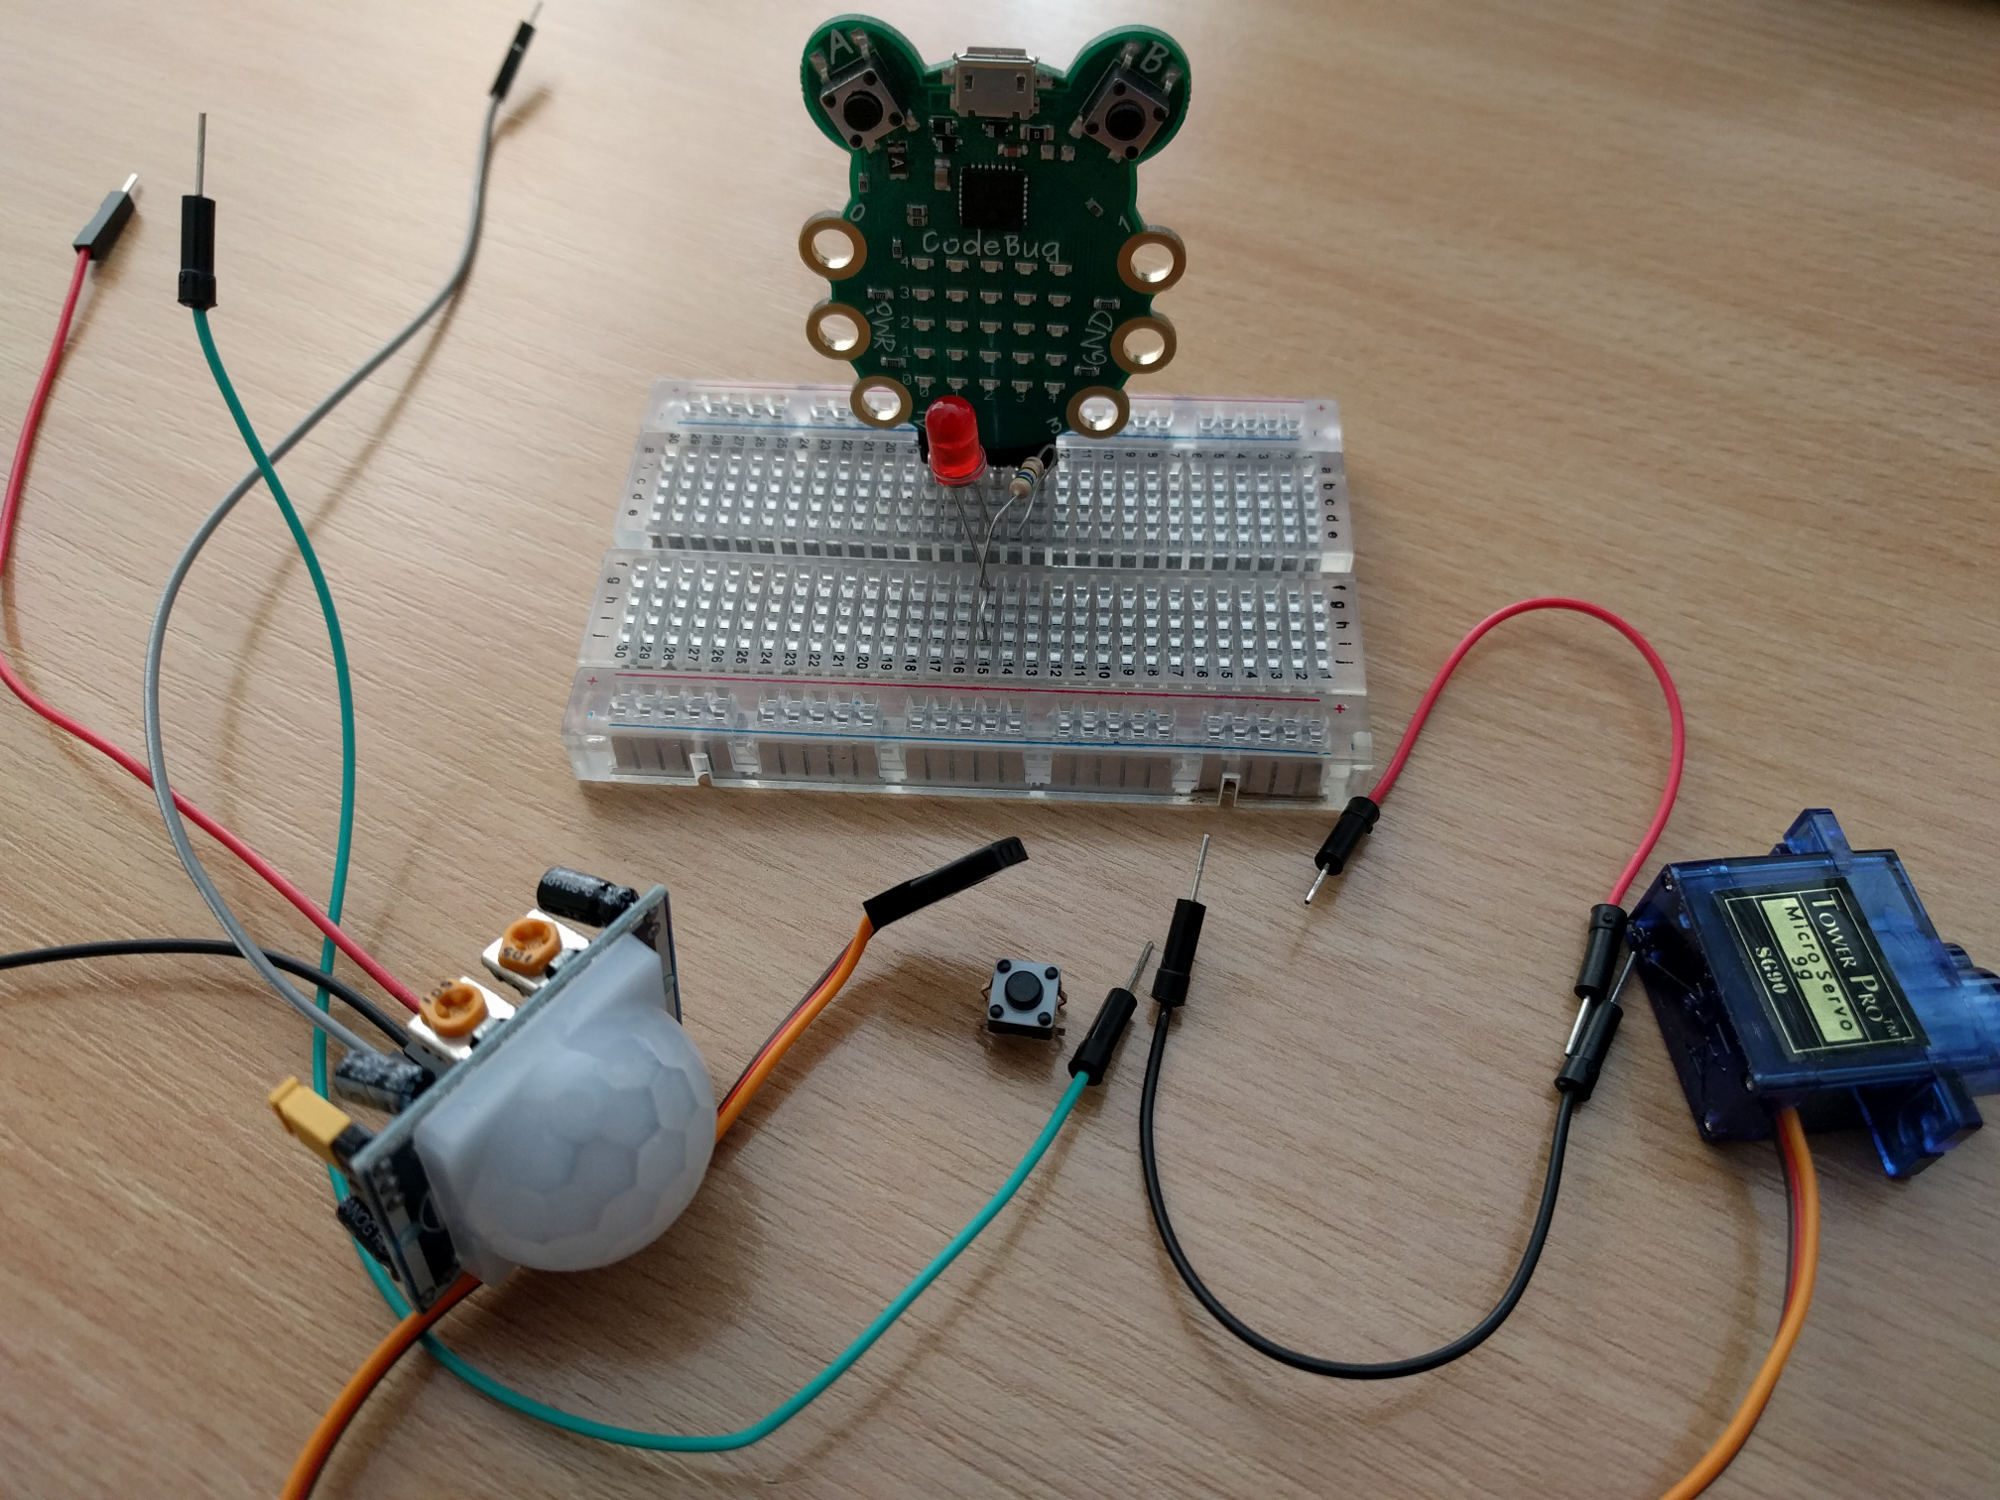 CodeBug breadboard